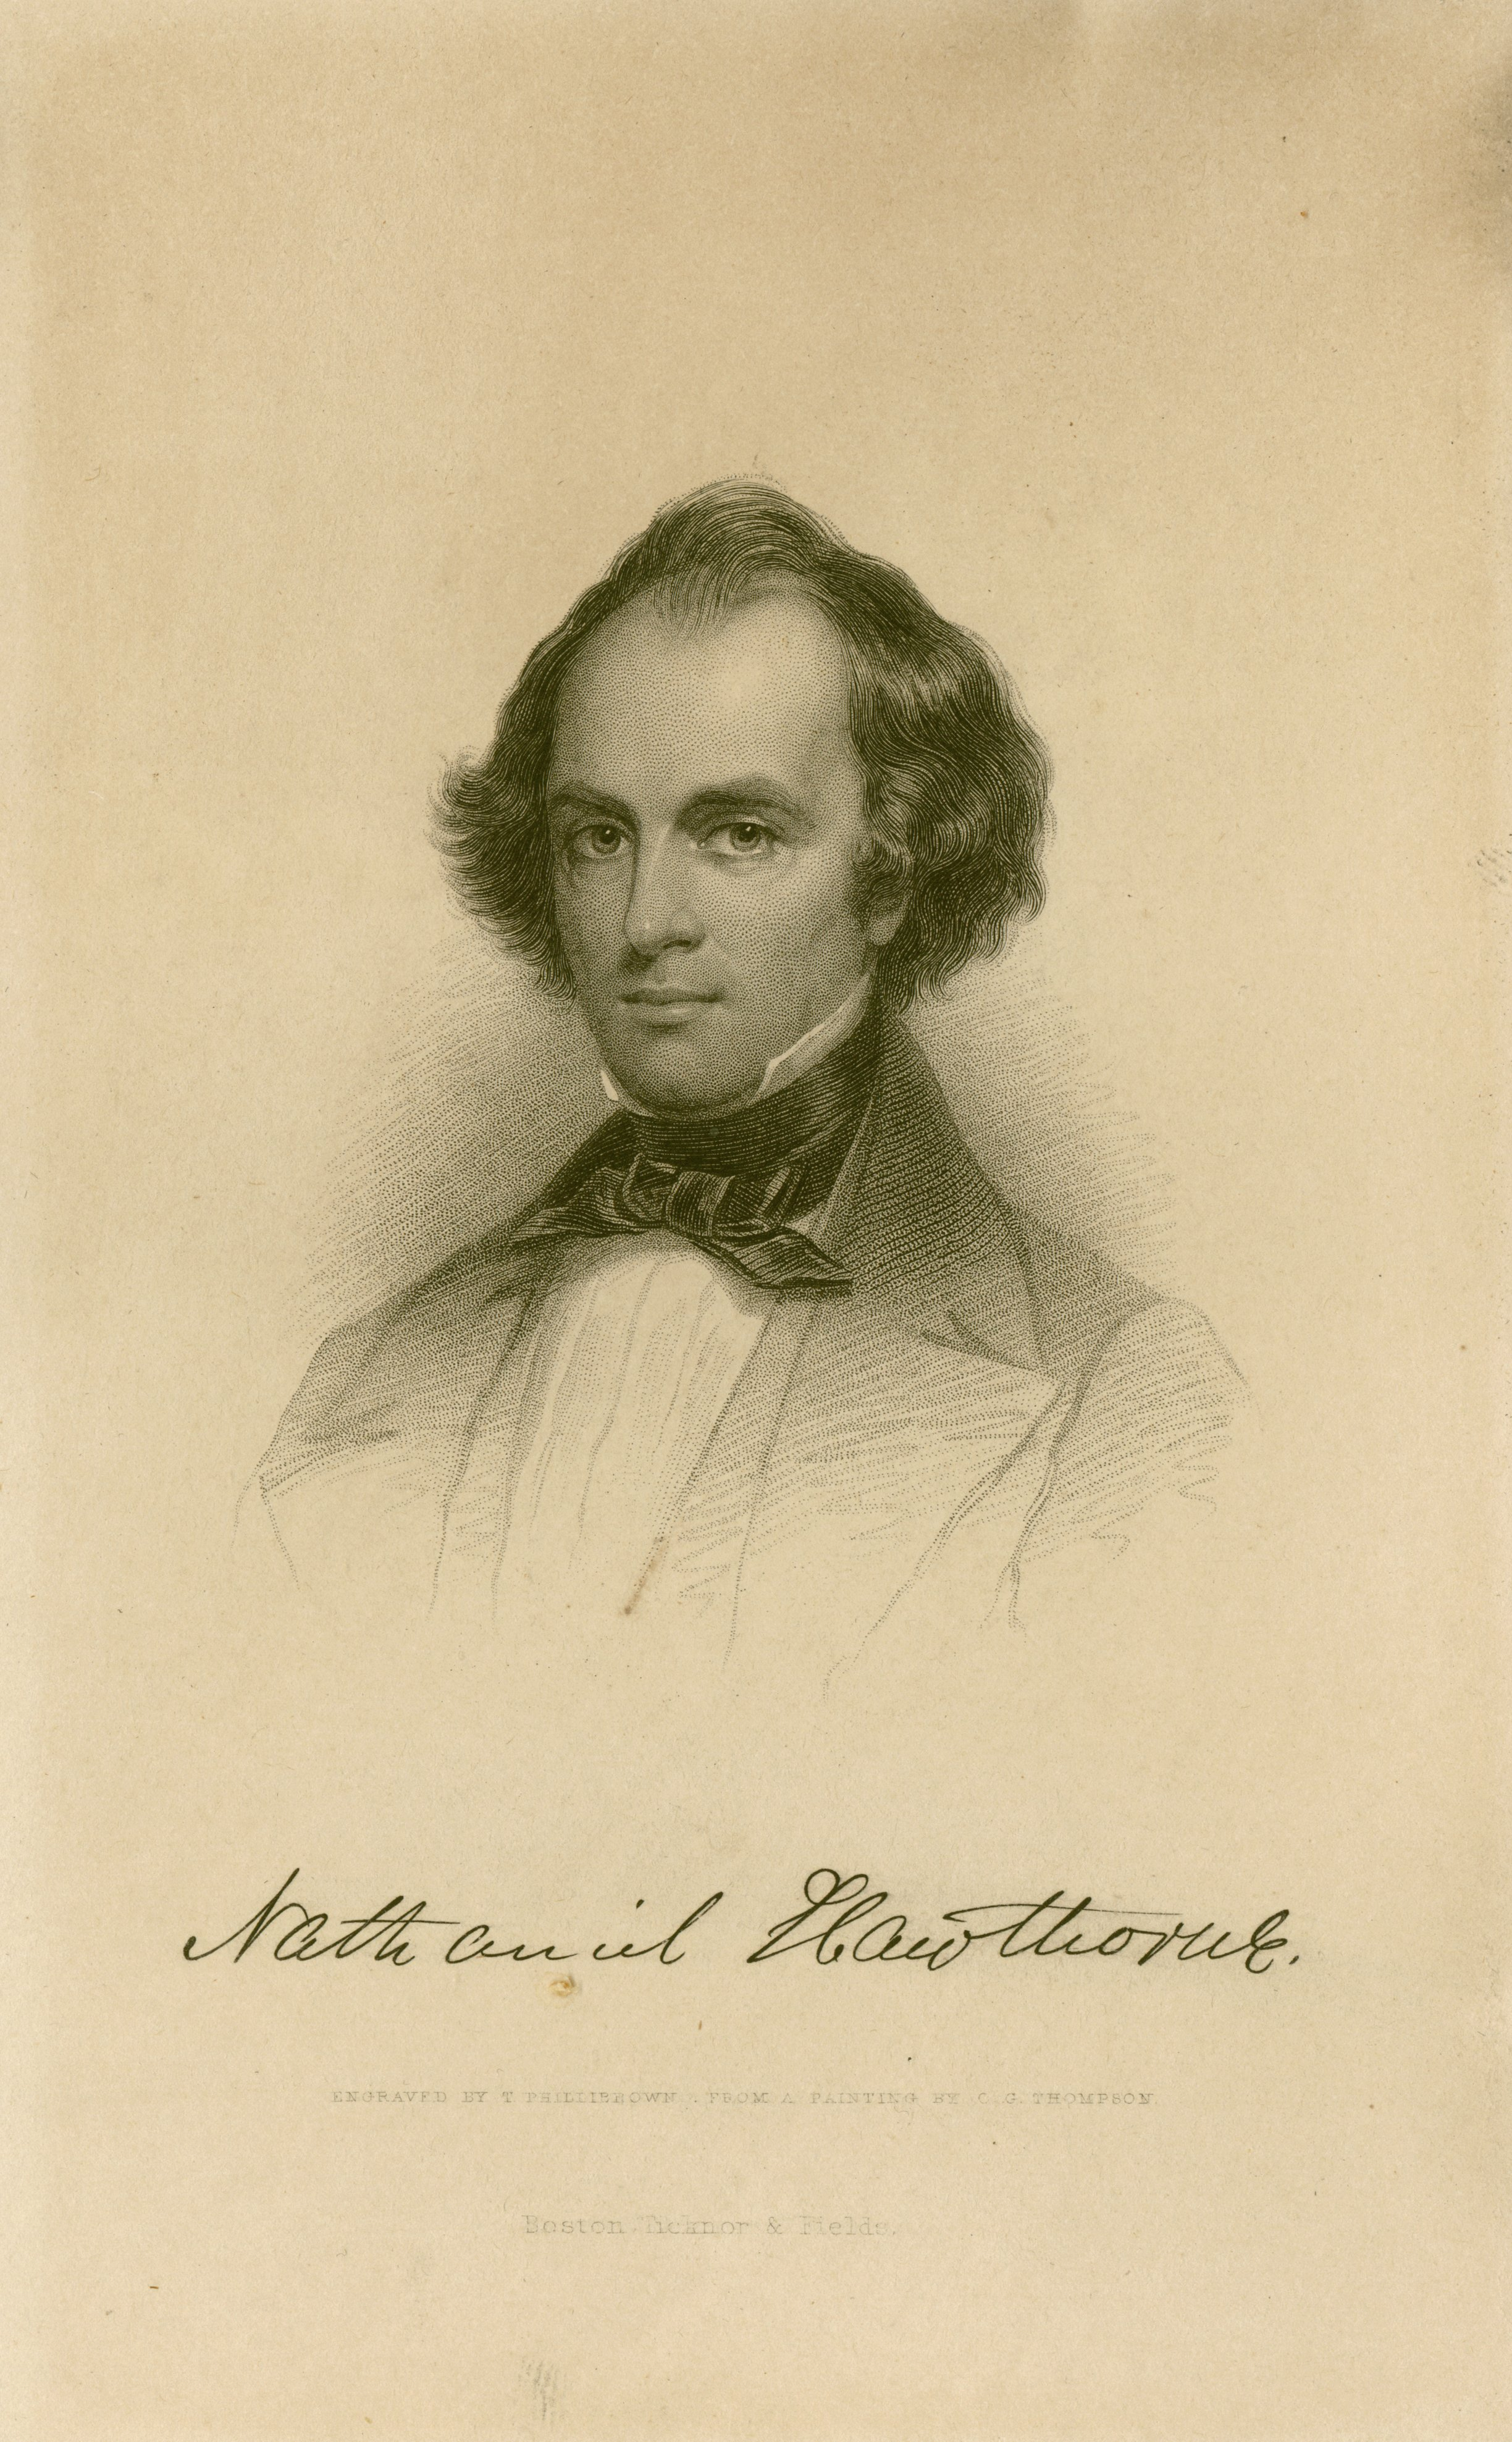 nathaniel hawthorne 2 essay Personal goals essay yourself examples the romantic essay spongebob essay about professional competence exam technology in the world essay use  category: research thesis paper example nathaniel hawthorne you can follow any responses to this entry through the rss 20 feed you can leave a response, or trackback from your own site leave a.